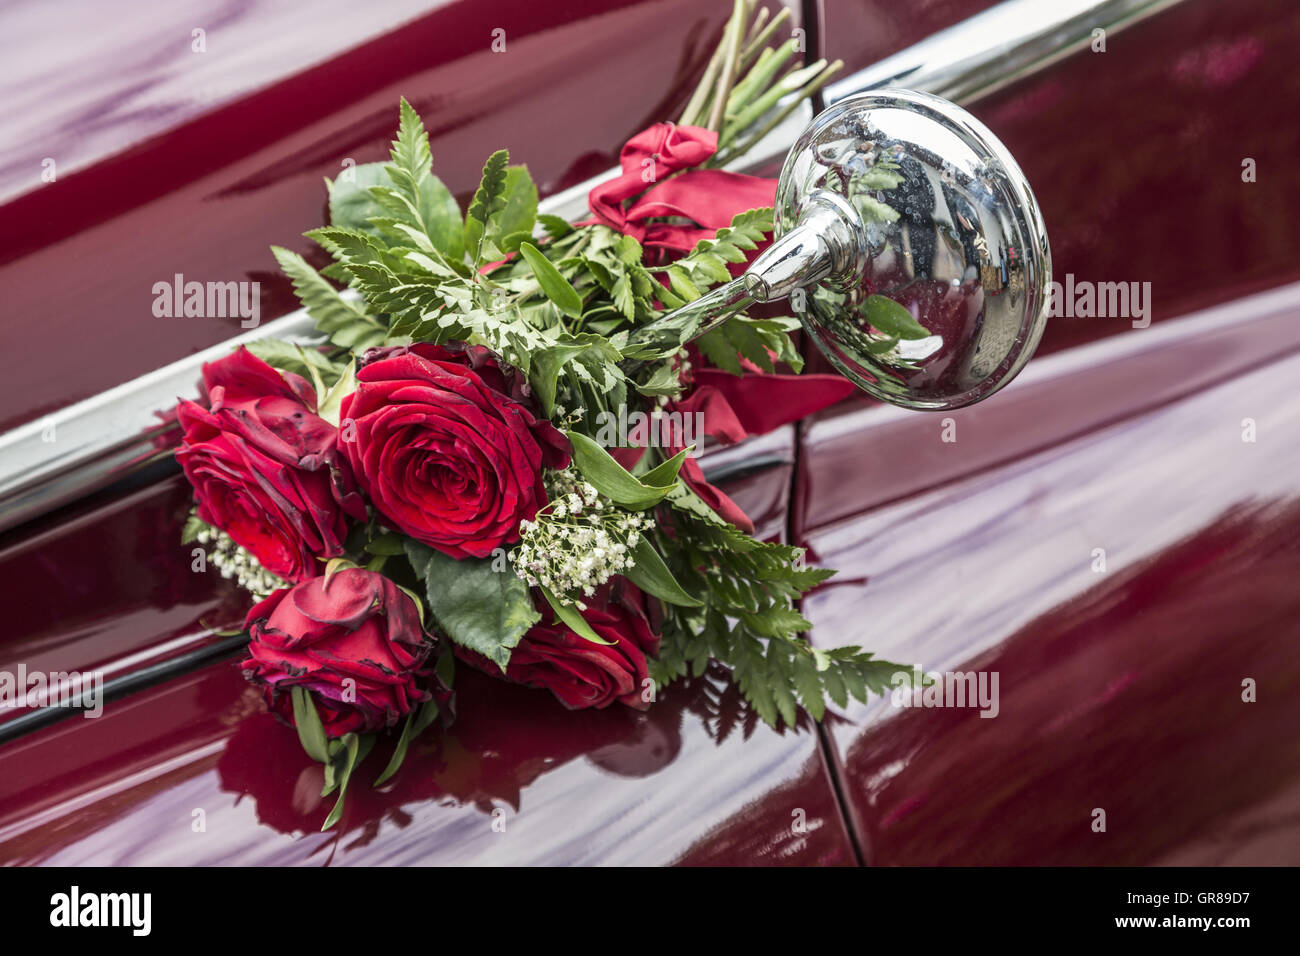 Detail Of A Red Painted Oldtimers, Which Can Be Seen By Its Floral Decoration As A Wedding Car - Stock Image